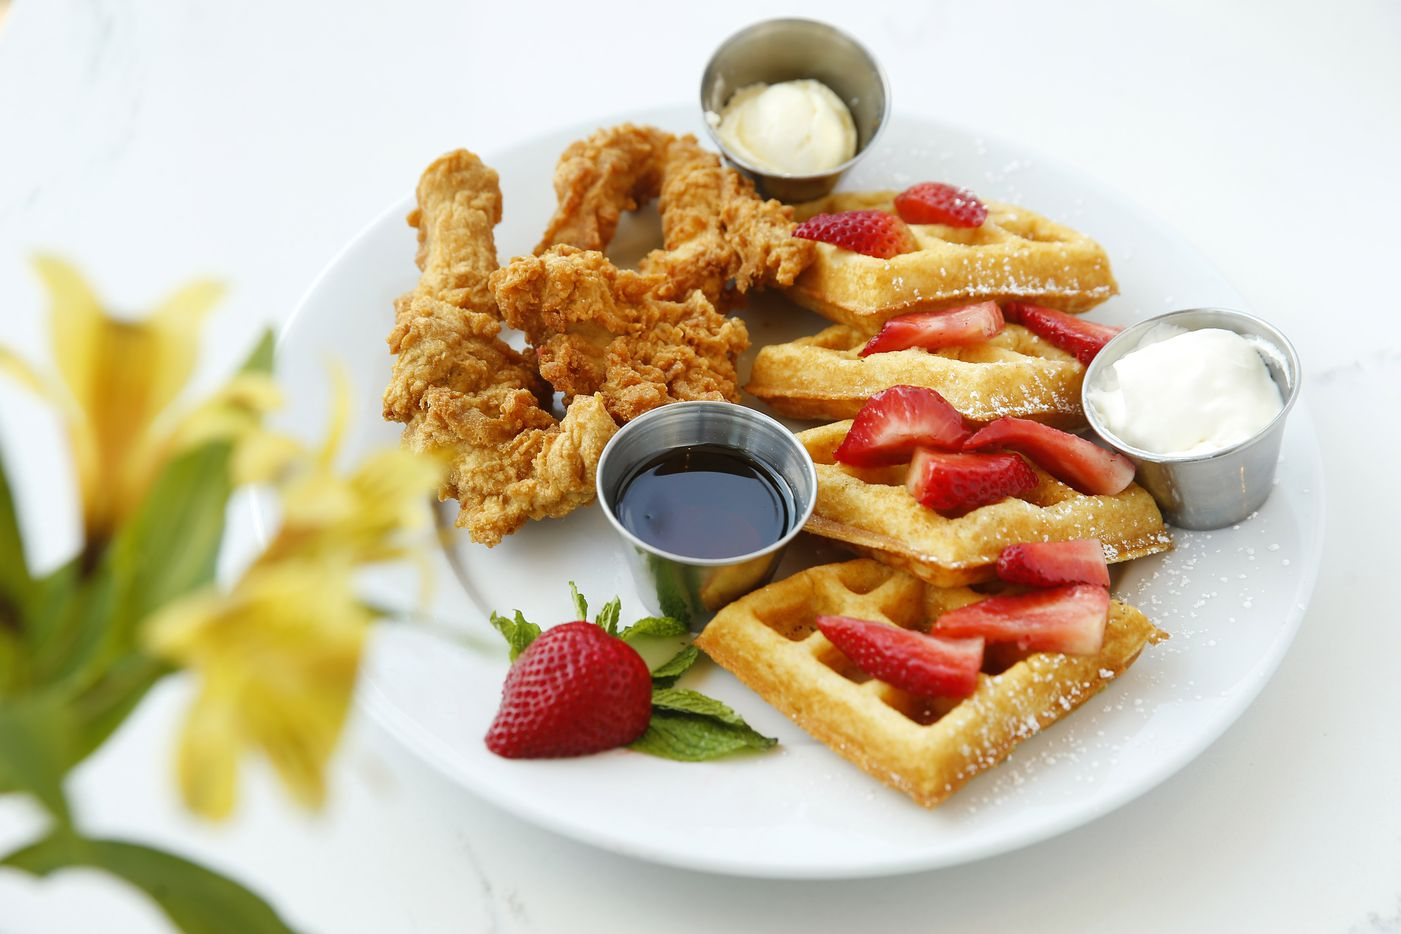 Bella chicken and waffles, crispy all-natural chicken breast is served with multigrain waffles topped with fresh strawberries at Bellagreen on Walnut Hill Lane in Dallas.